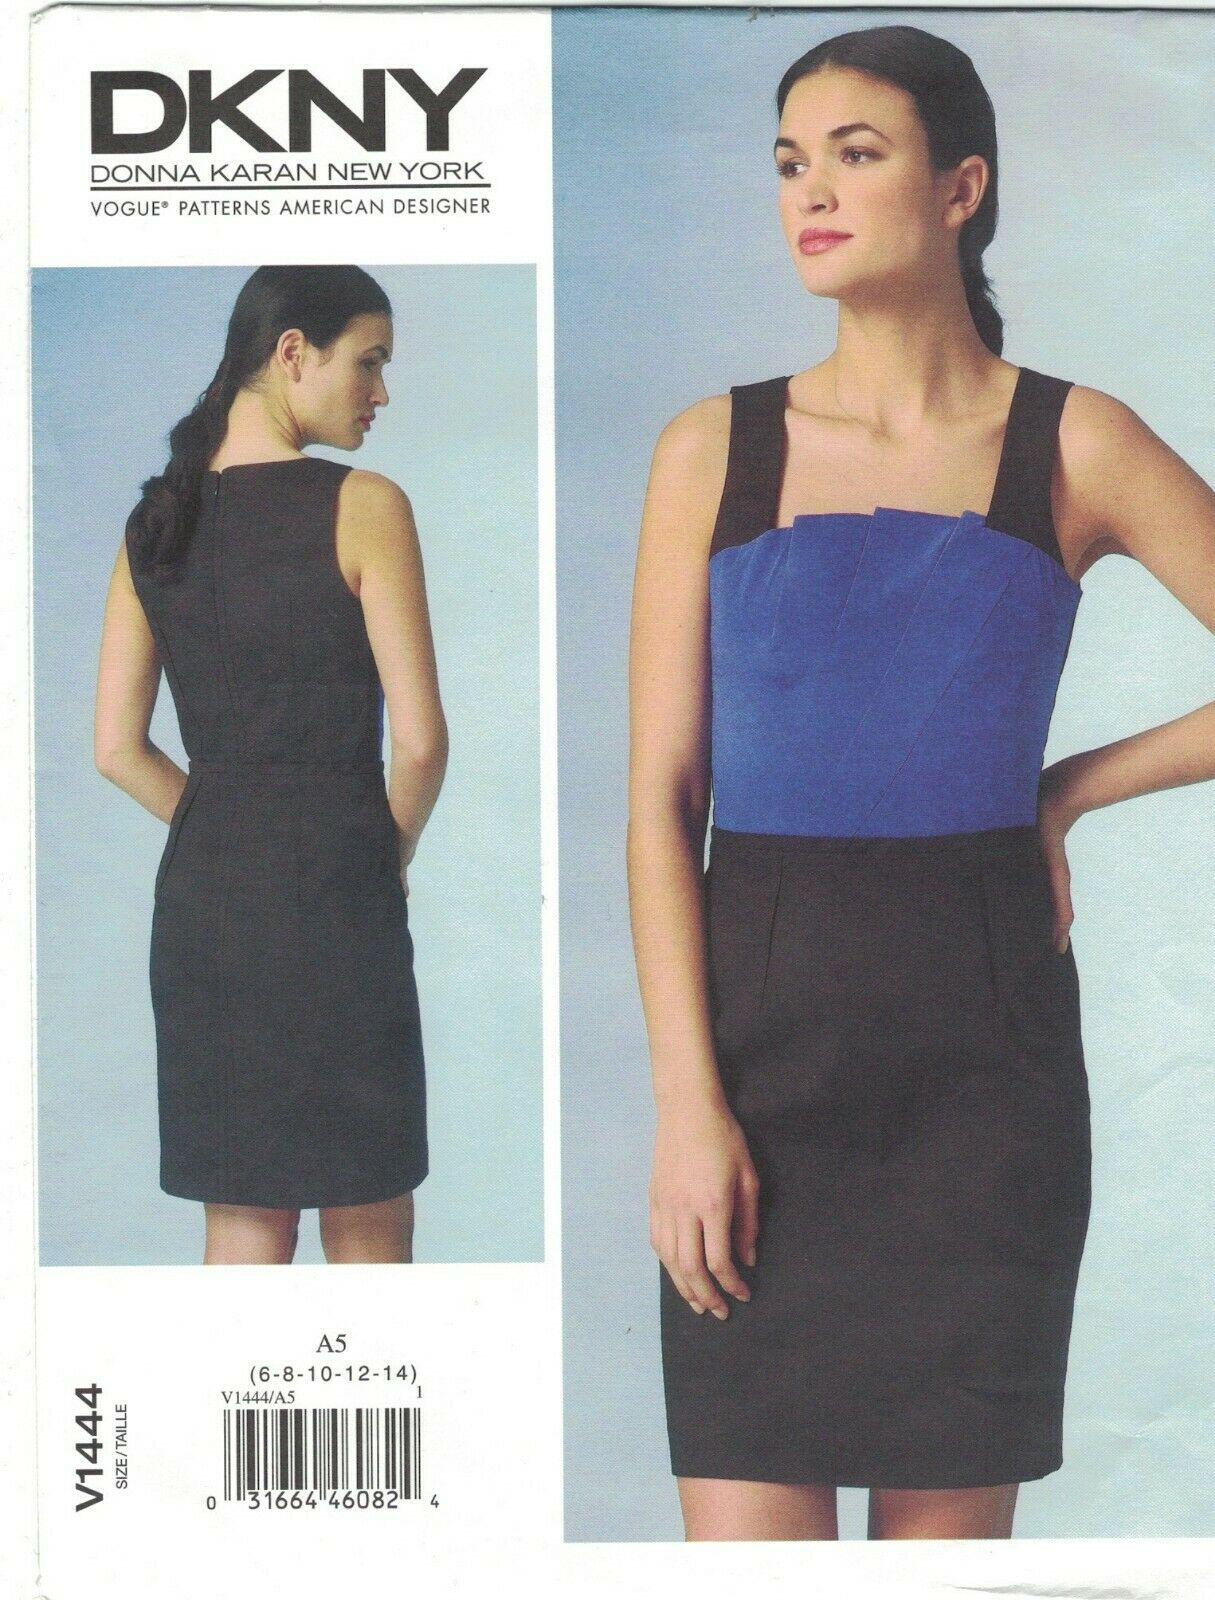 Primary image for Vogue 1444 DKNY Donna Karan Pleated Fan Front Dress Pattern Choose Size Uncut